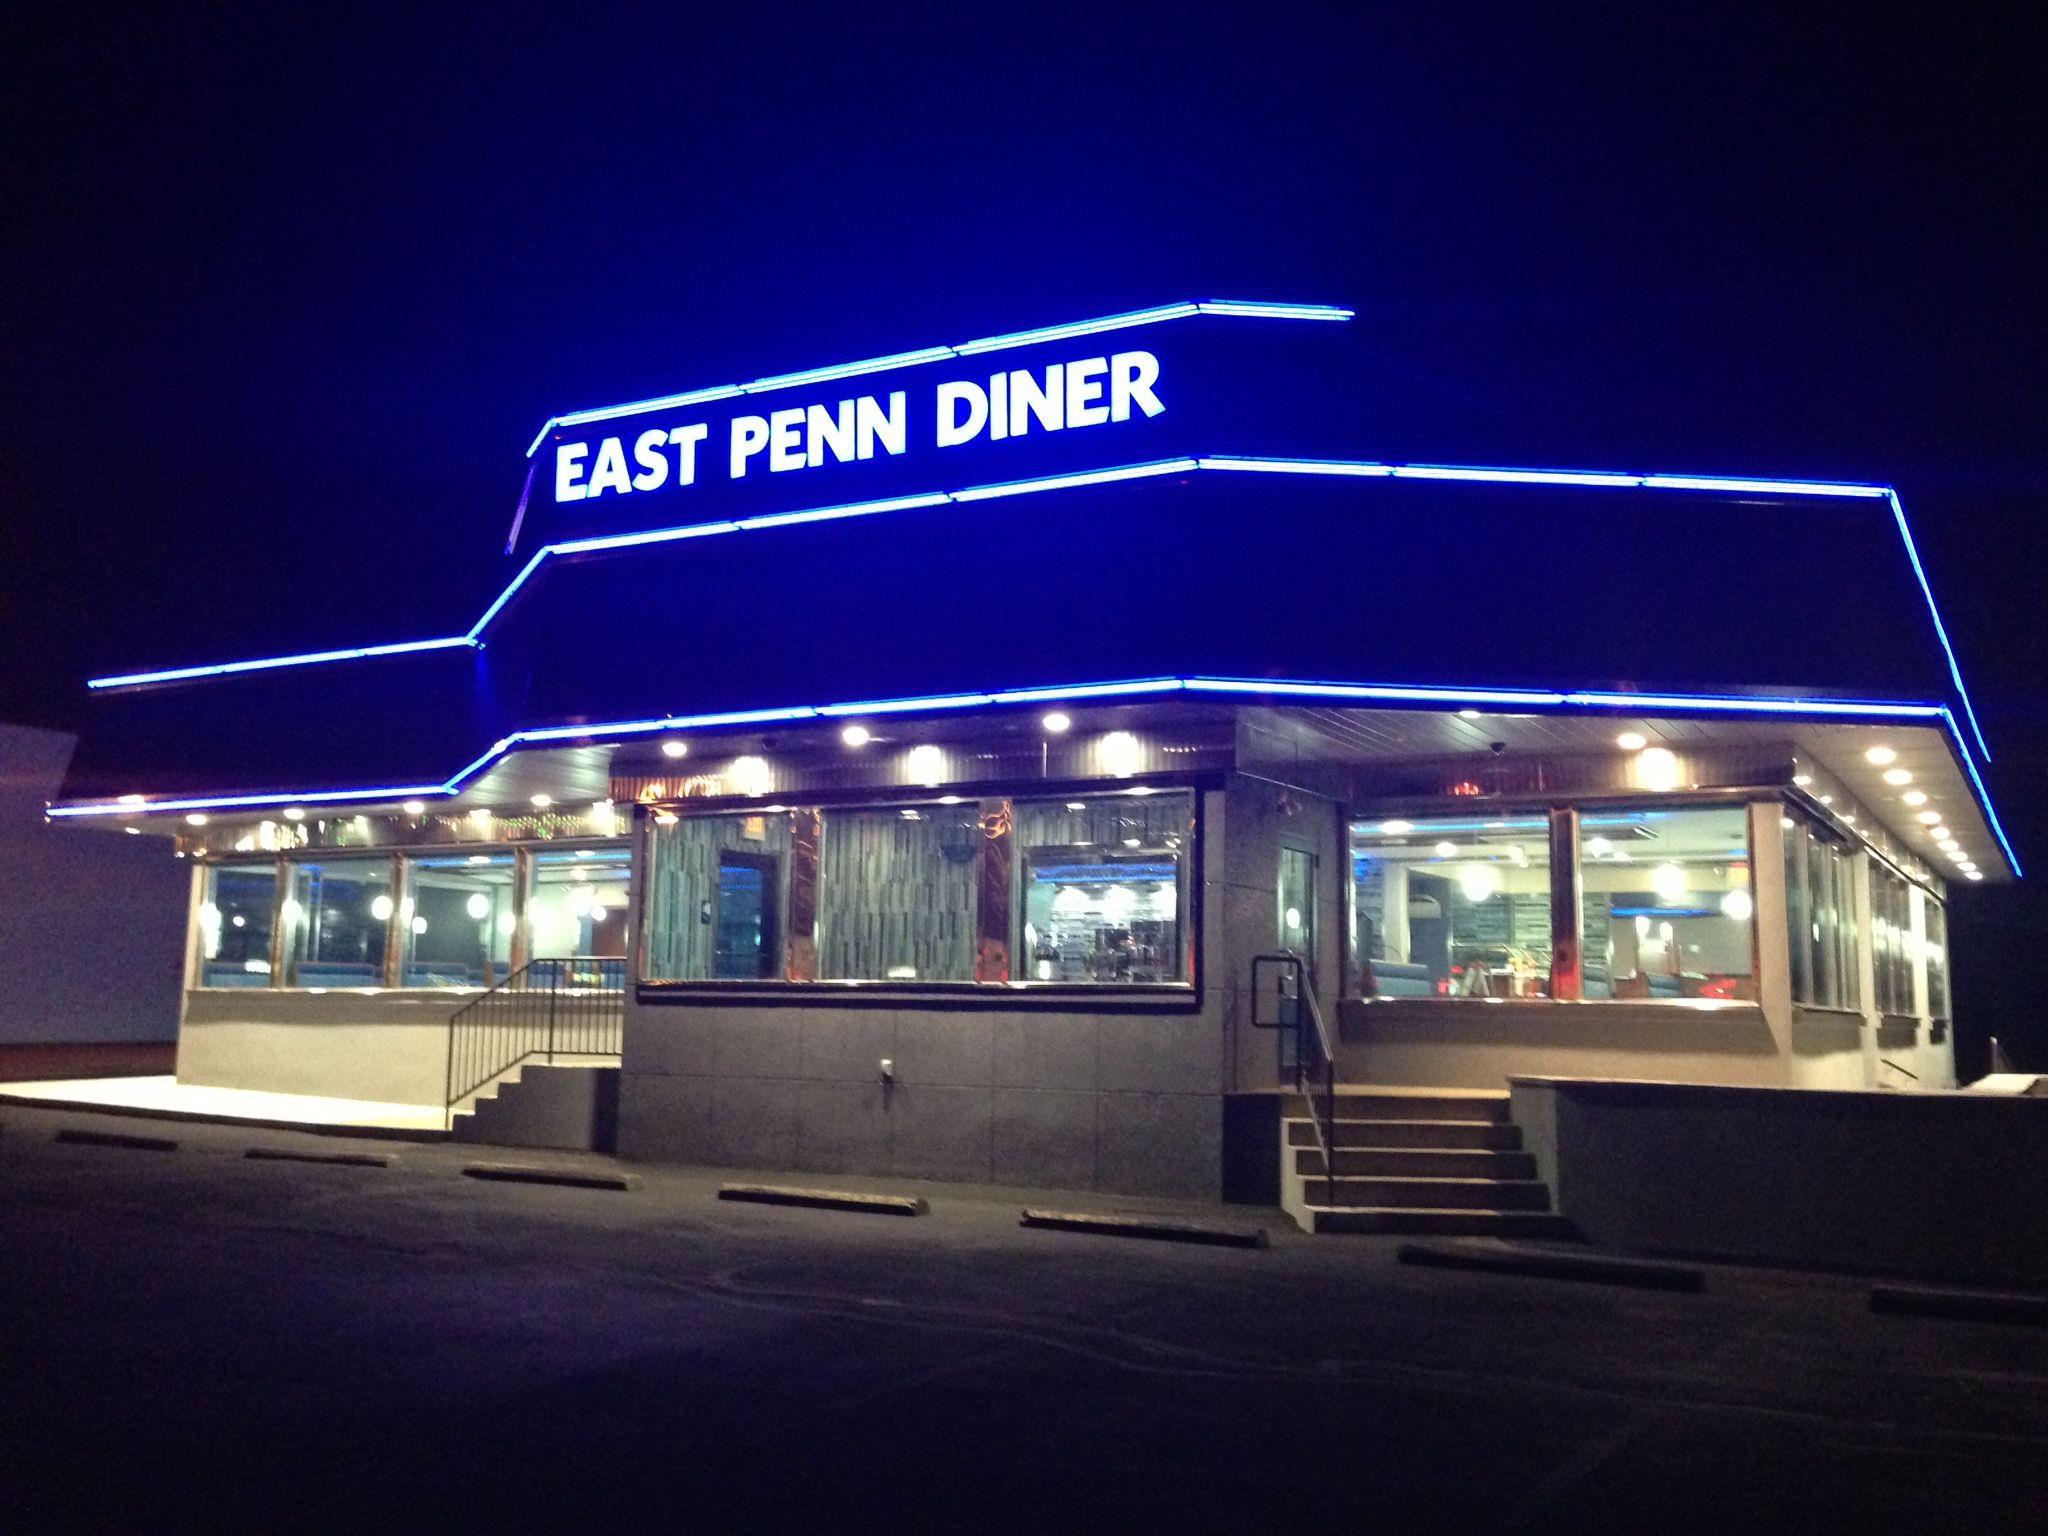 exterior of the restaurant with neon sign